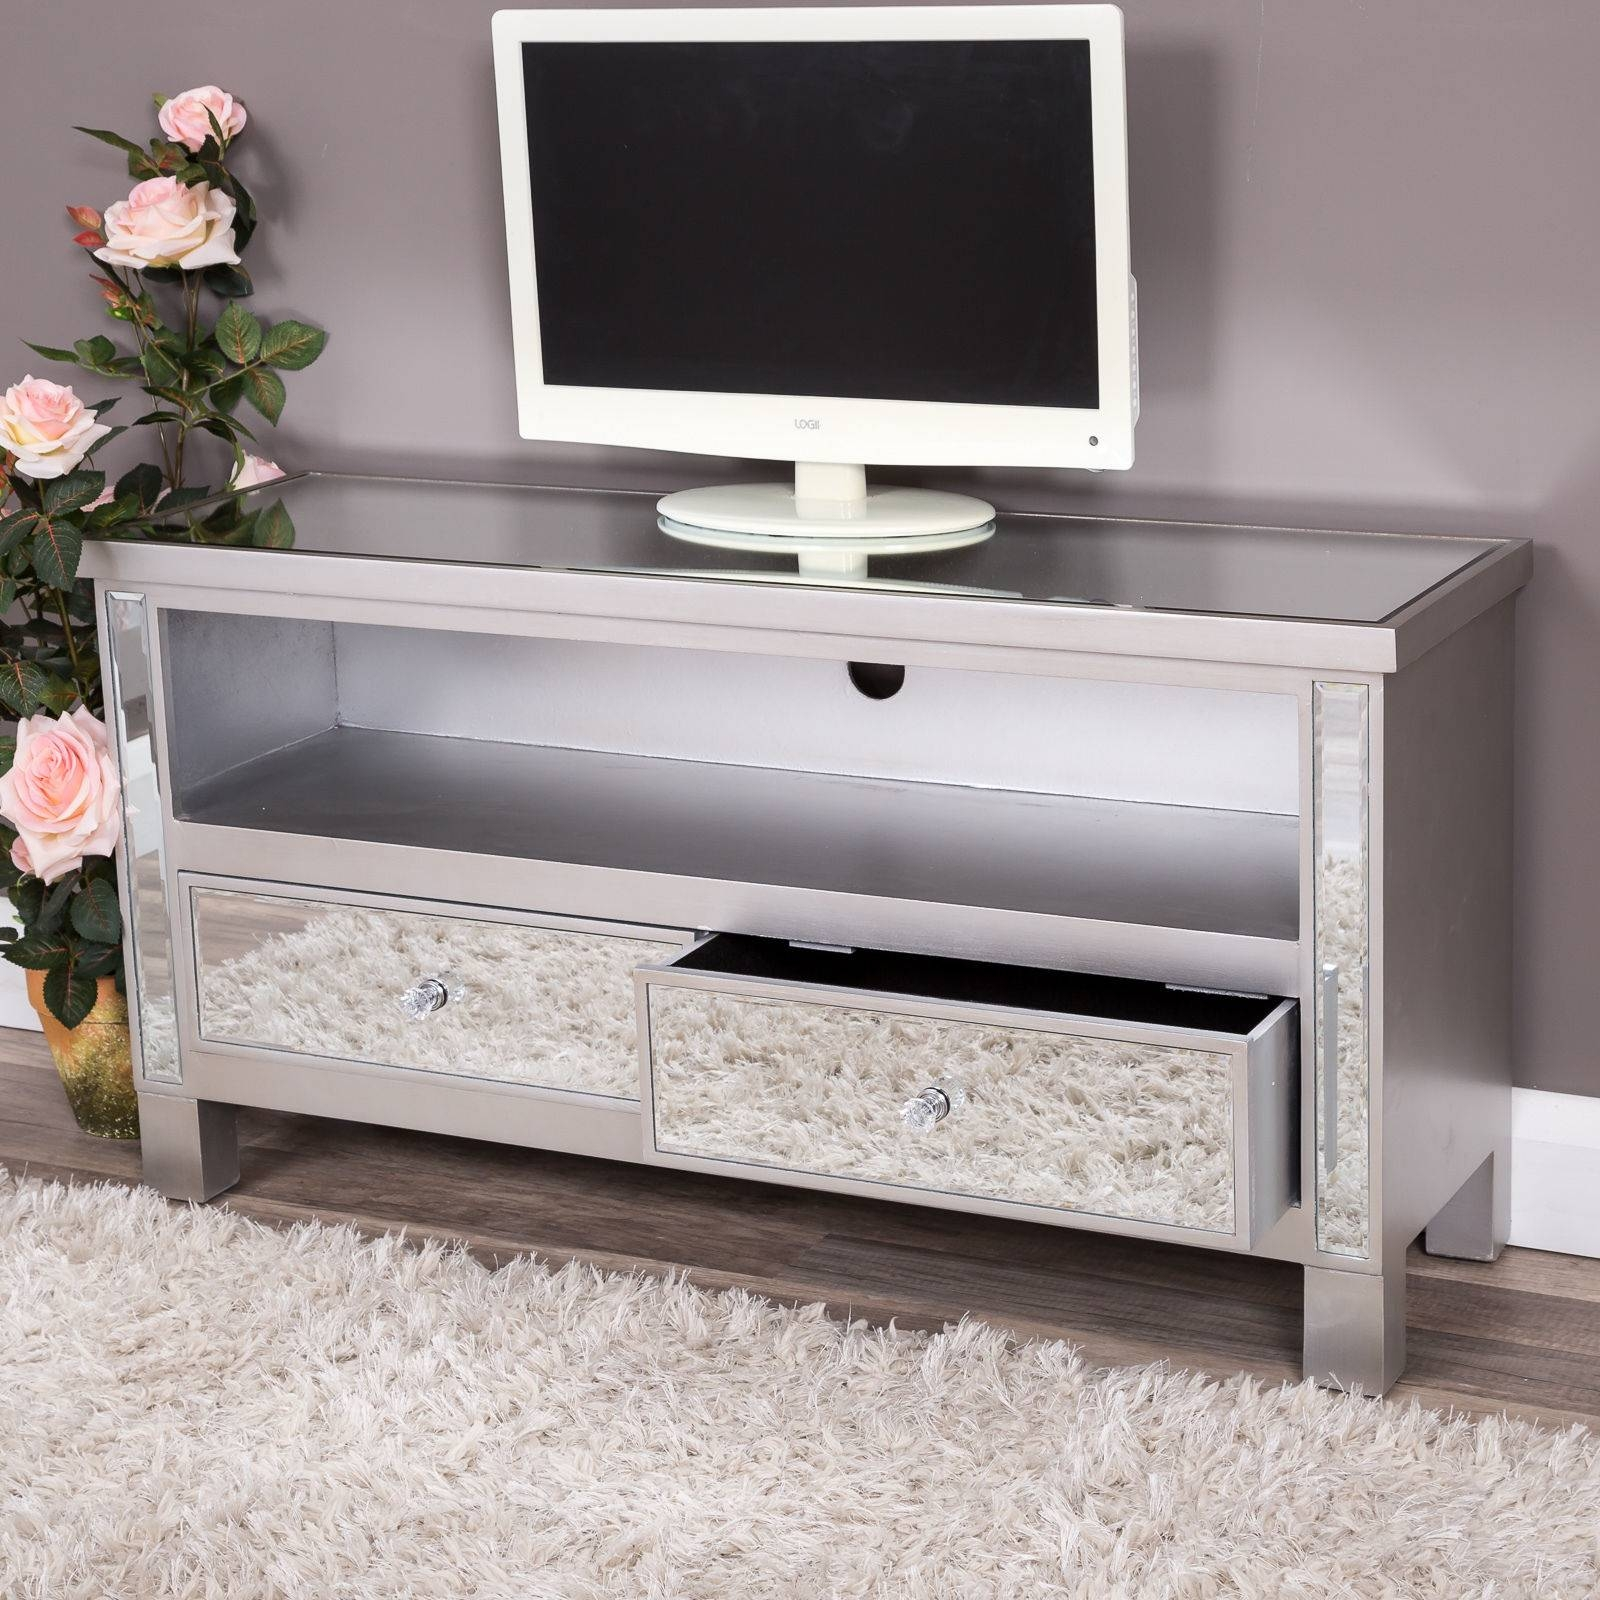 Silver Mirrored Glass 2 Drawer Tv Entertainment Cabinet Stand Unit inside Mirror Tv Cabinets (Image 11 of 15)